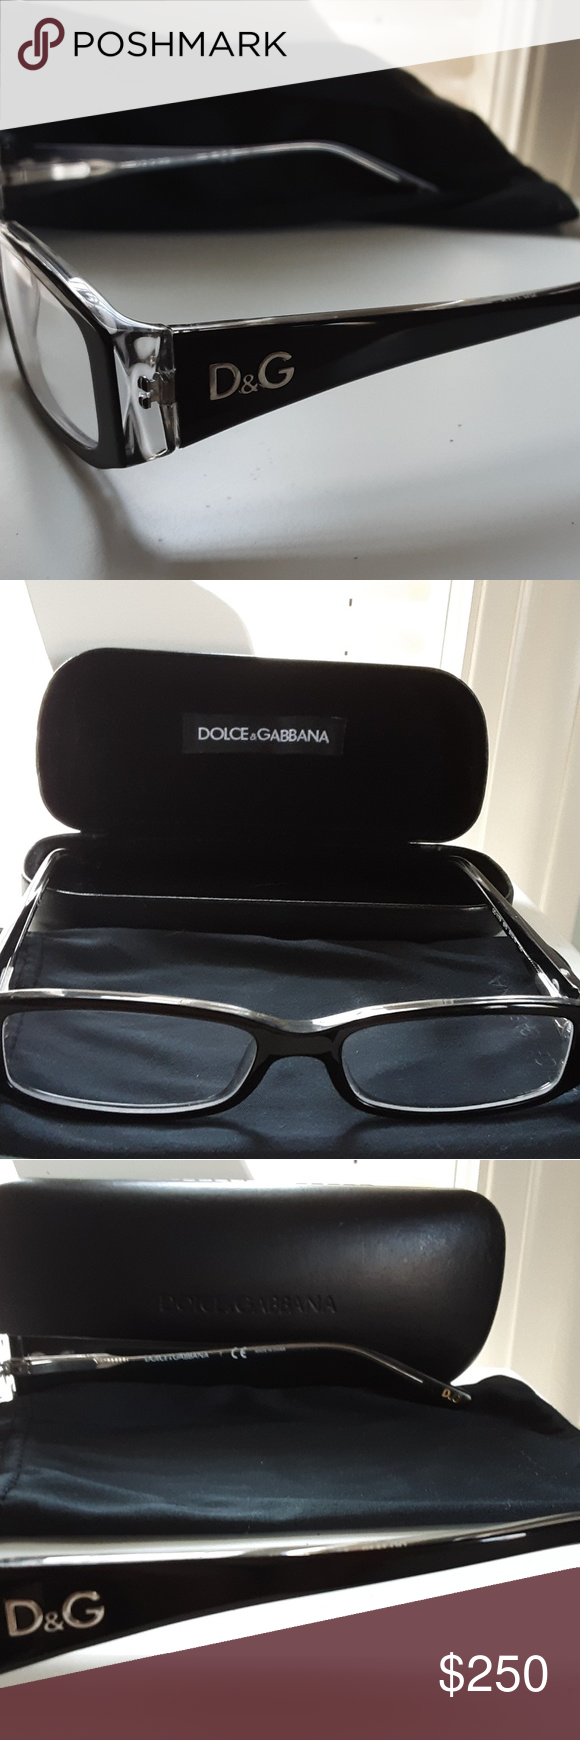 28cb03b52be0 D G Prescription Glasses Classy And Brand New. My Husband Purchased These